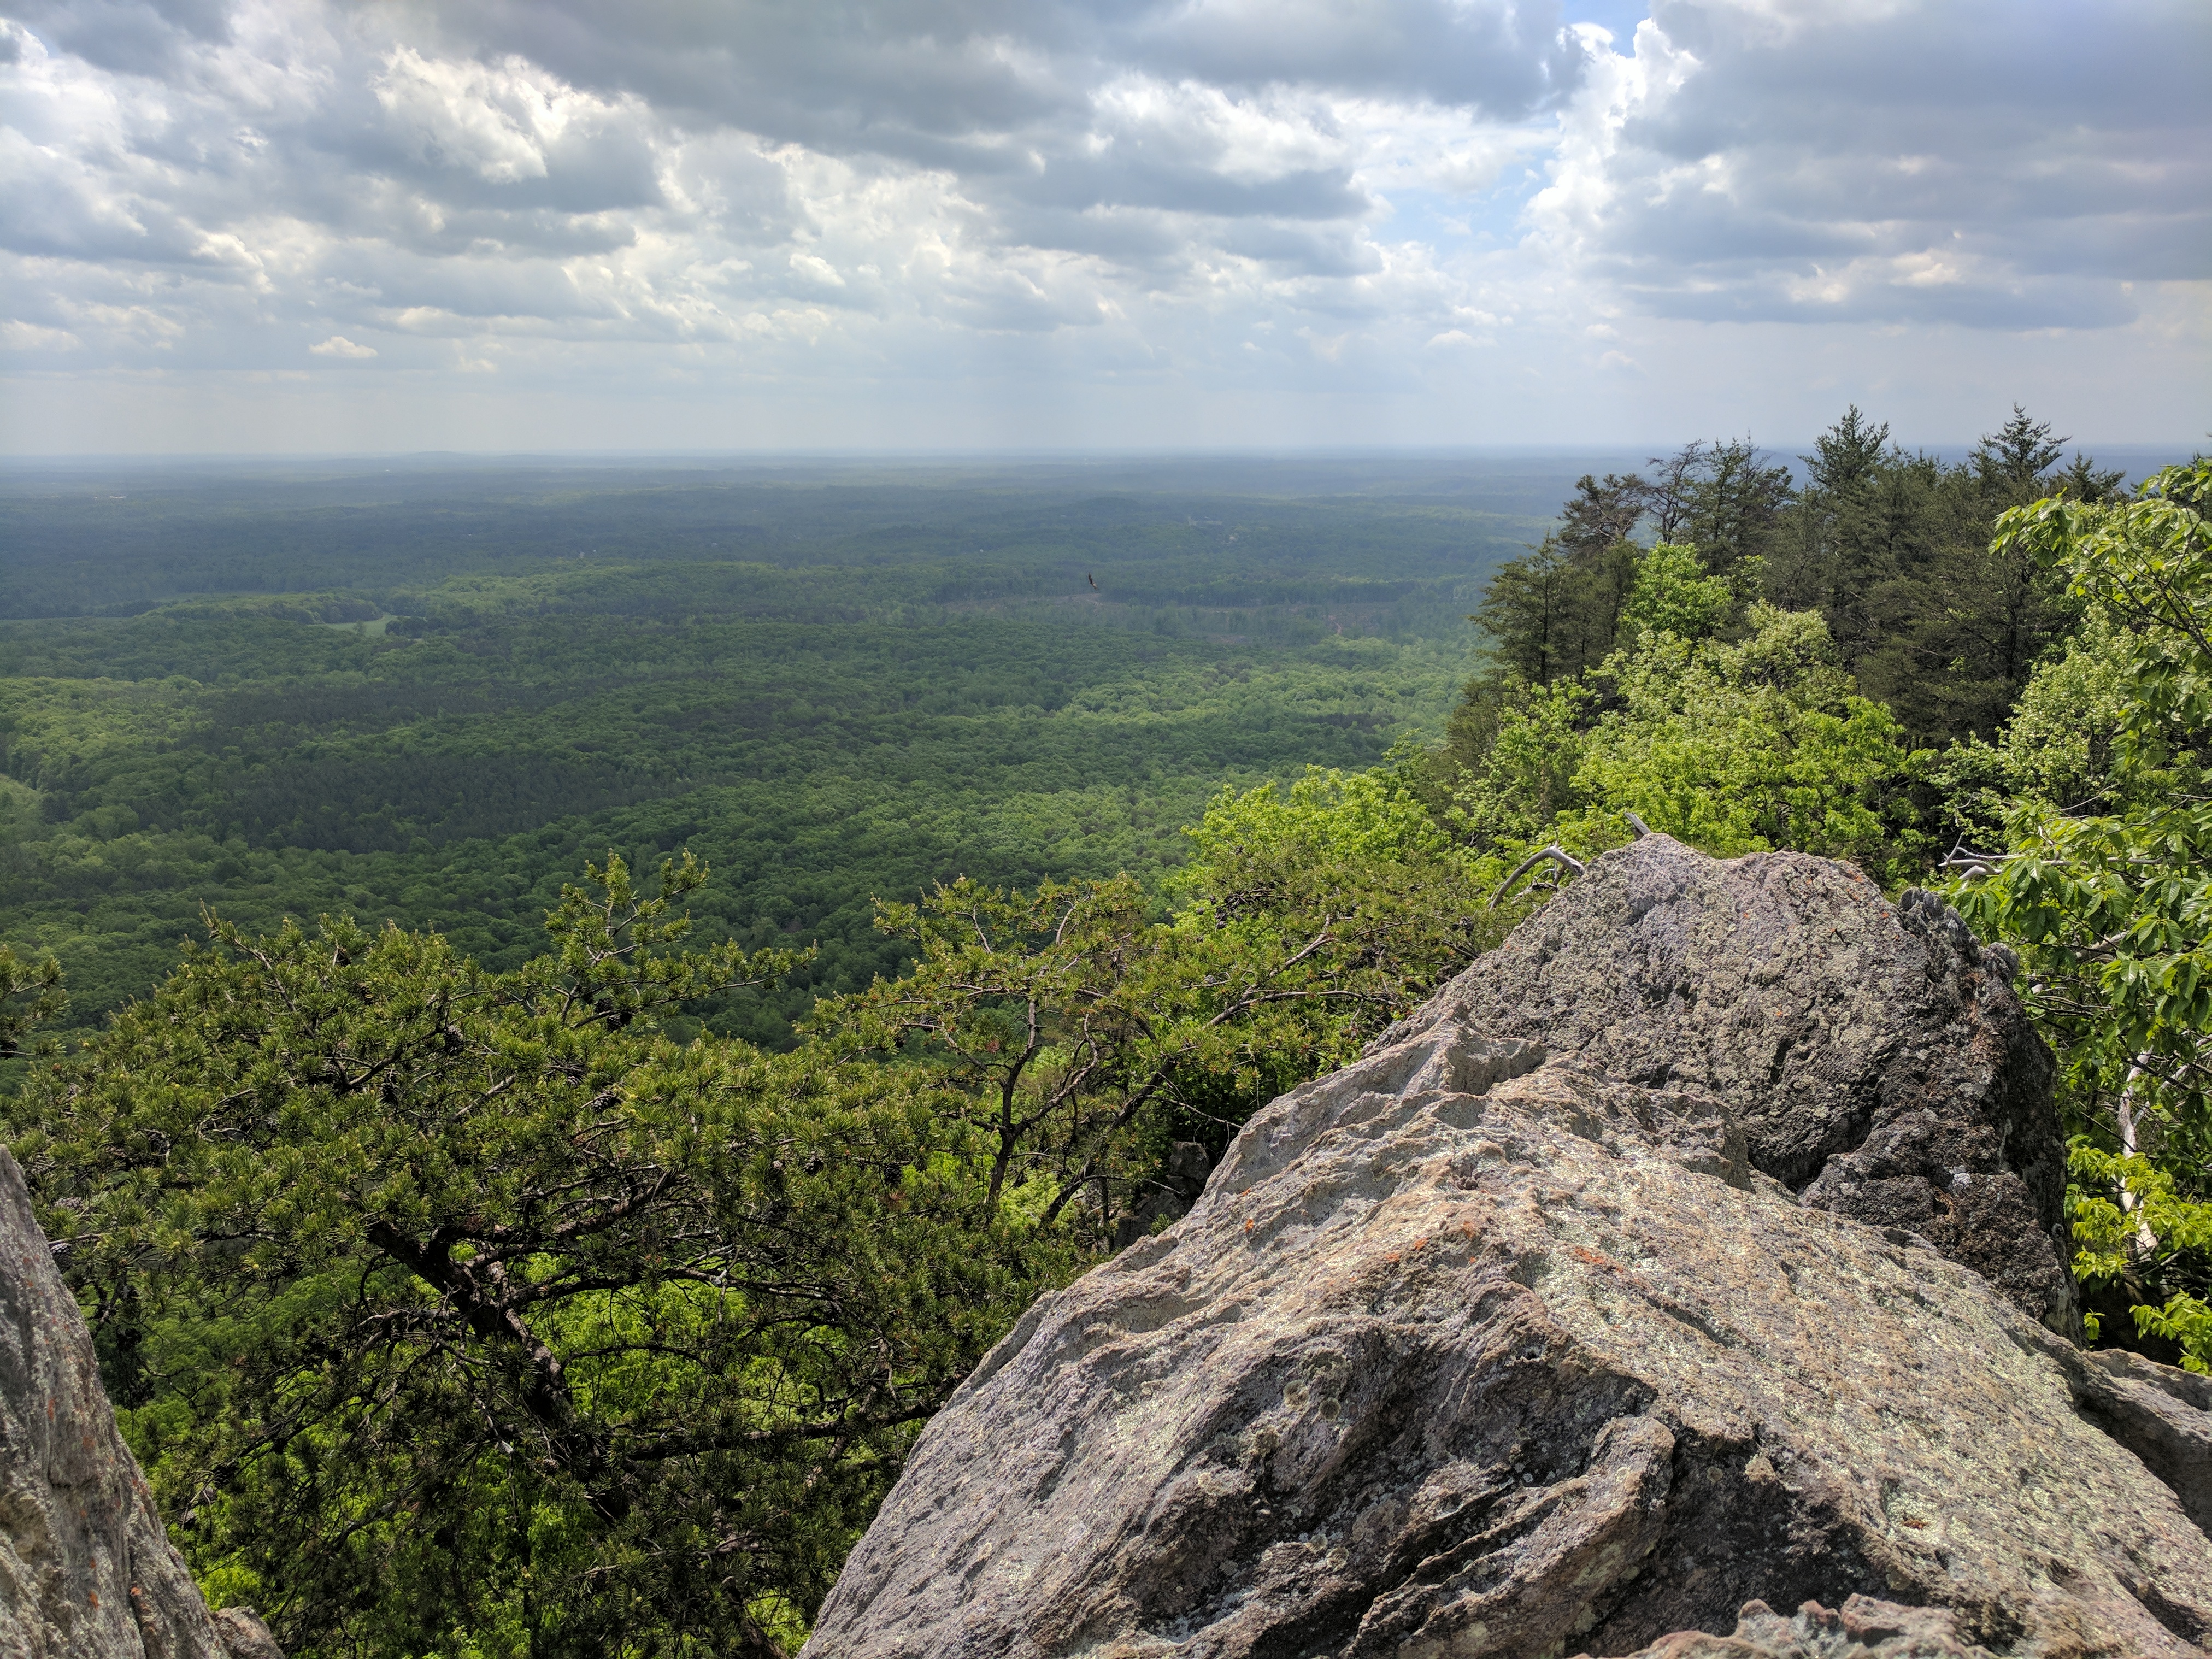 From the top of Crowther's Mountain